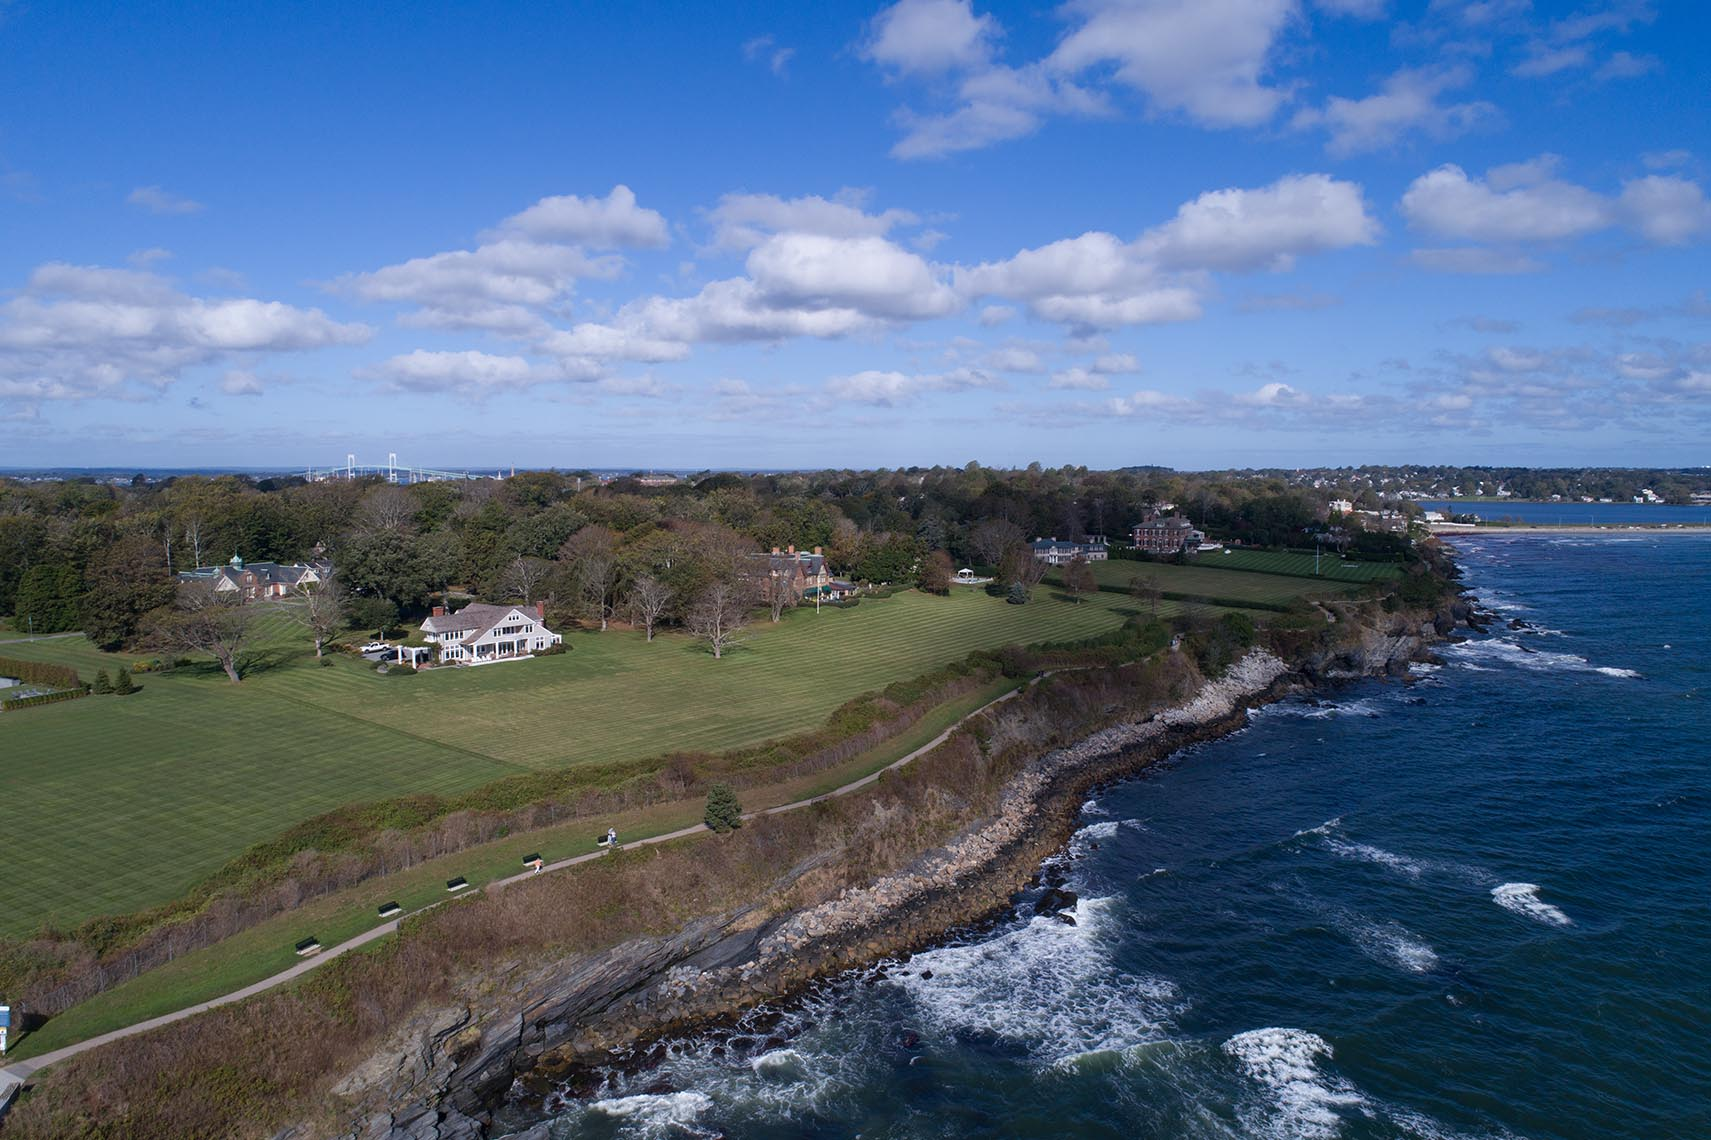 The Famous Cliff Walk Along Sheep Point Cove in Newport RI